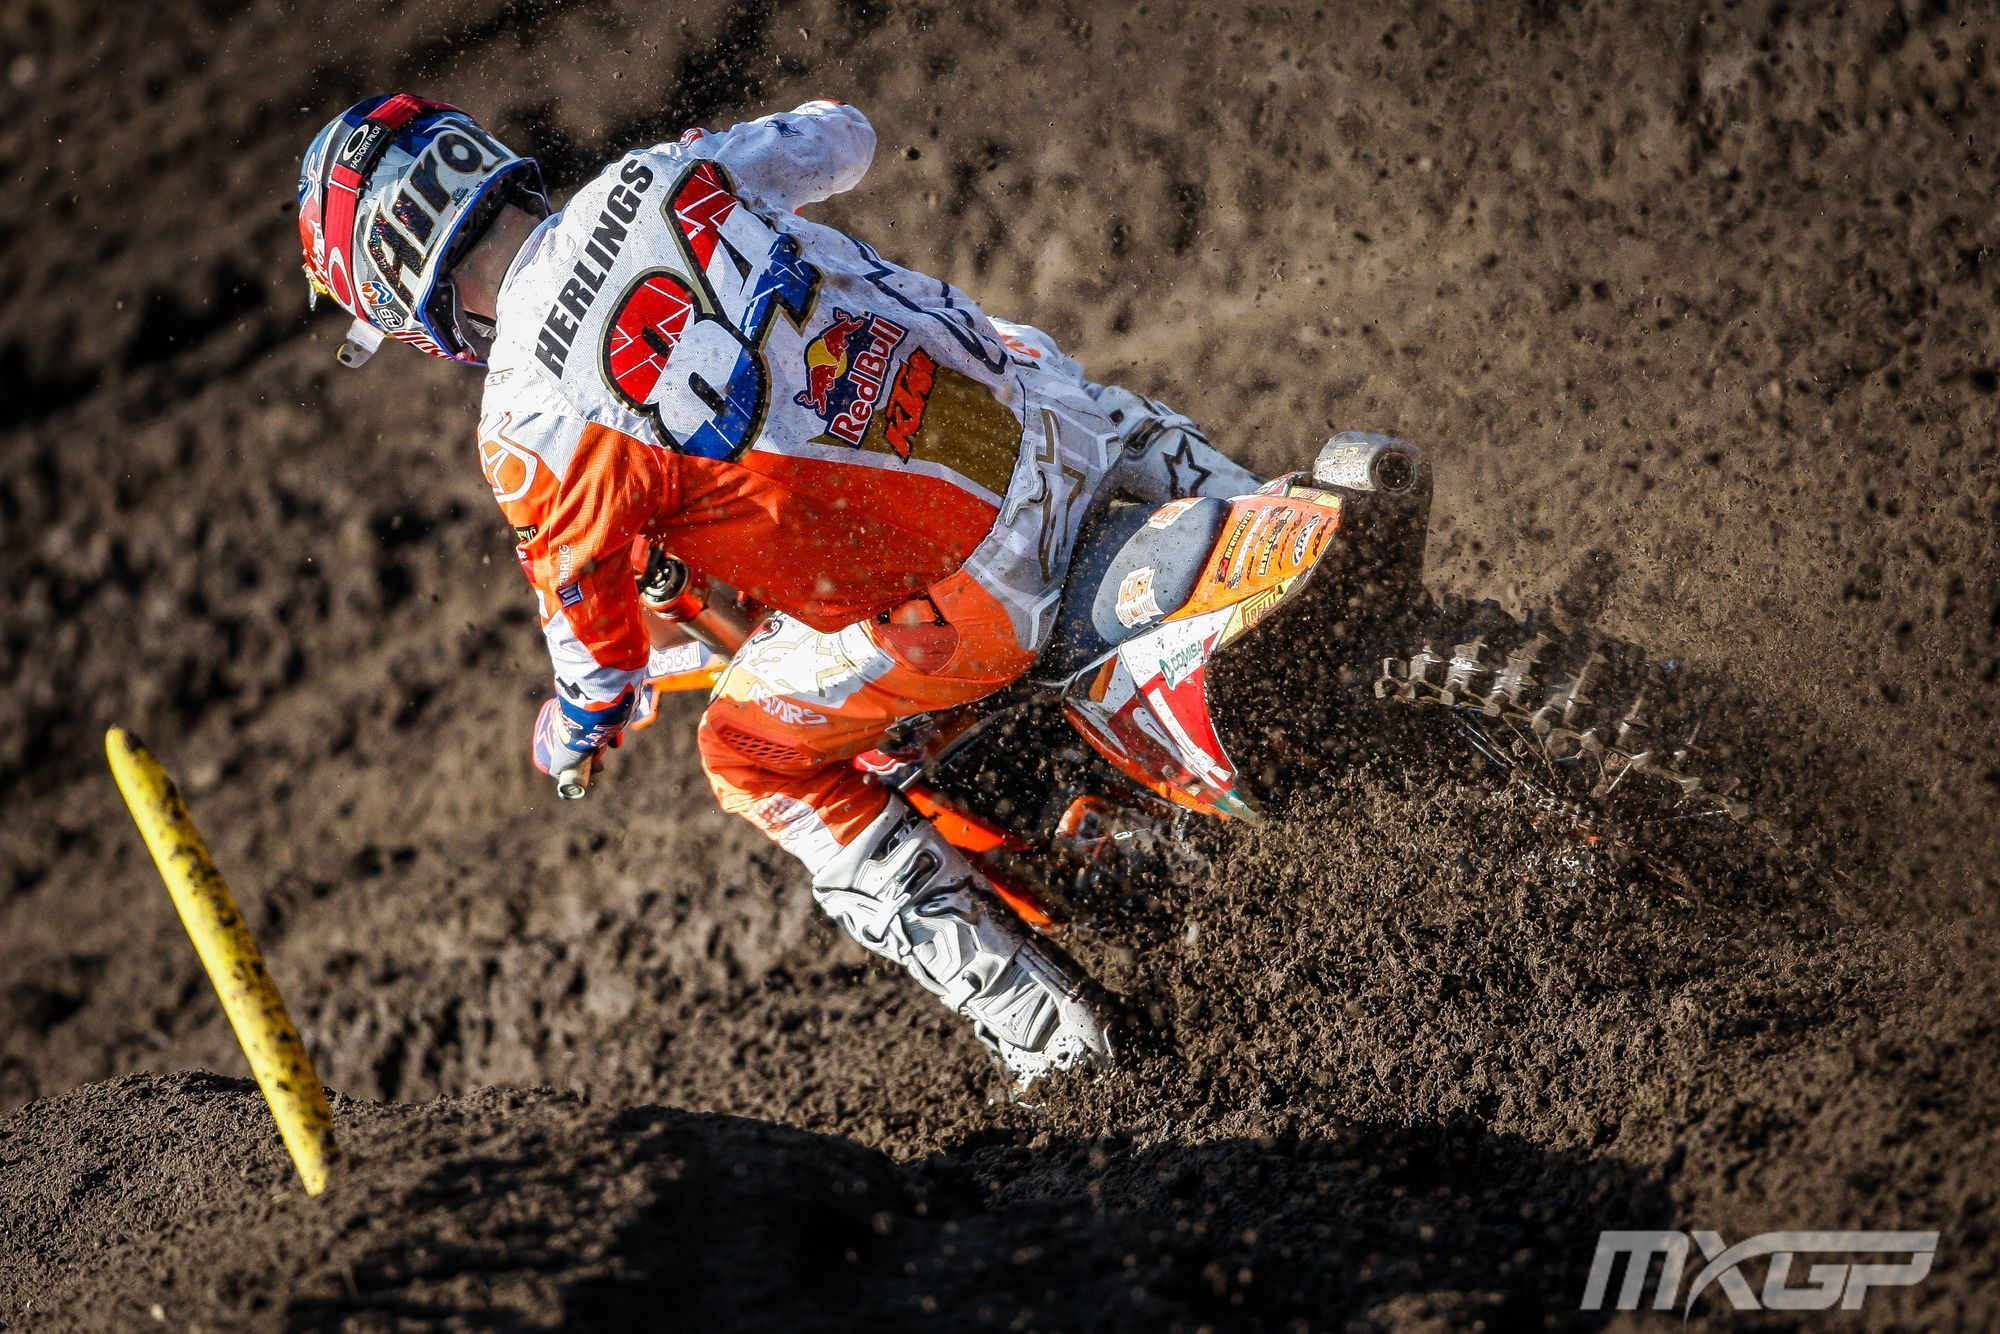 HERLINGS-II-MOTOCROSS-GP-2-NL-2020.jpg#asset:27496